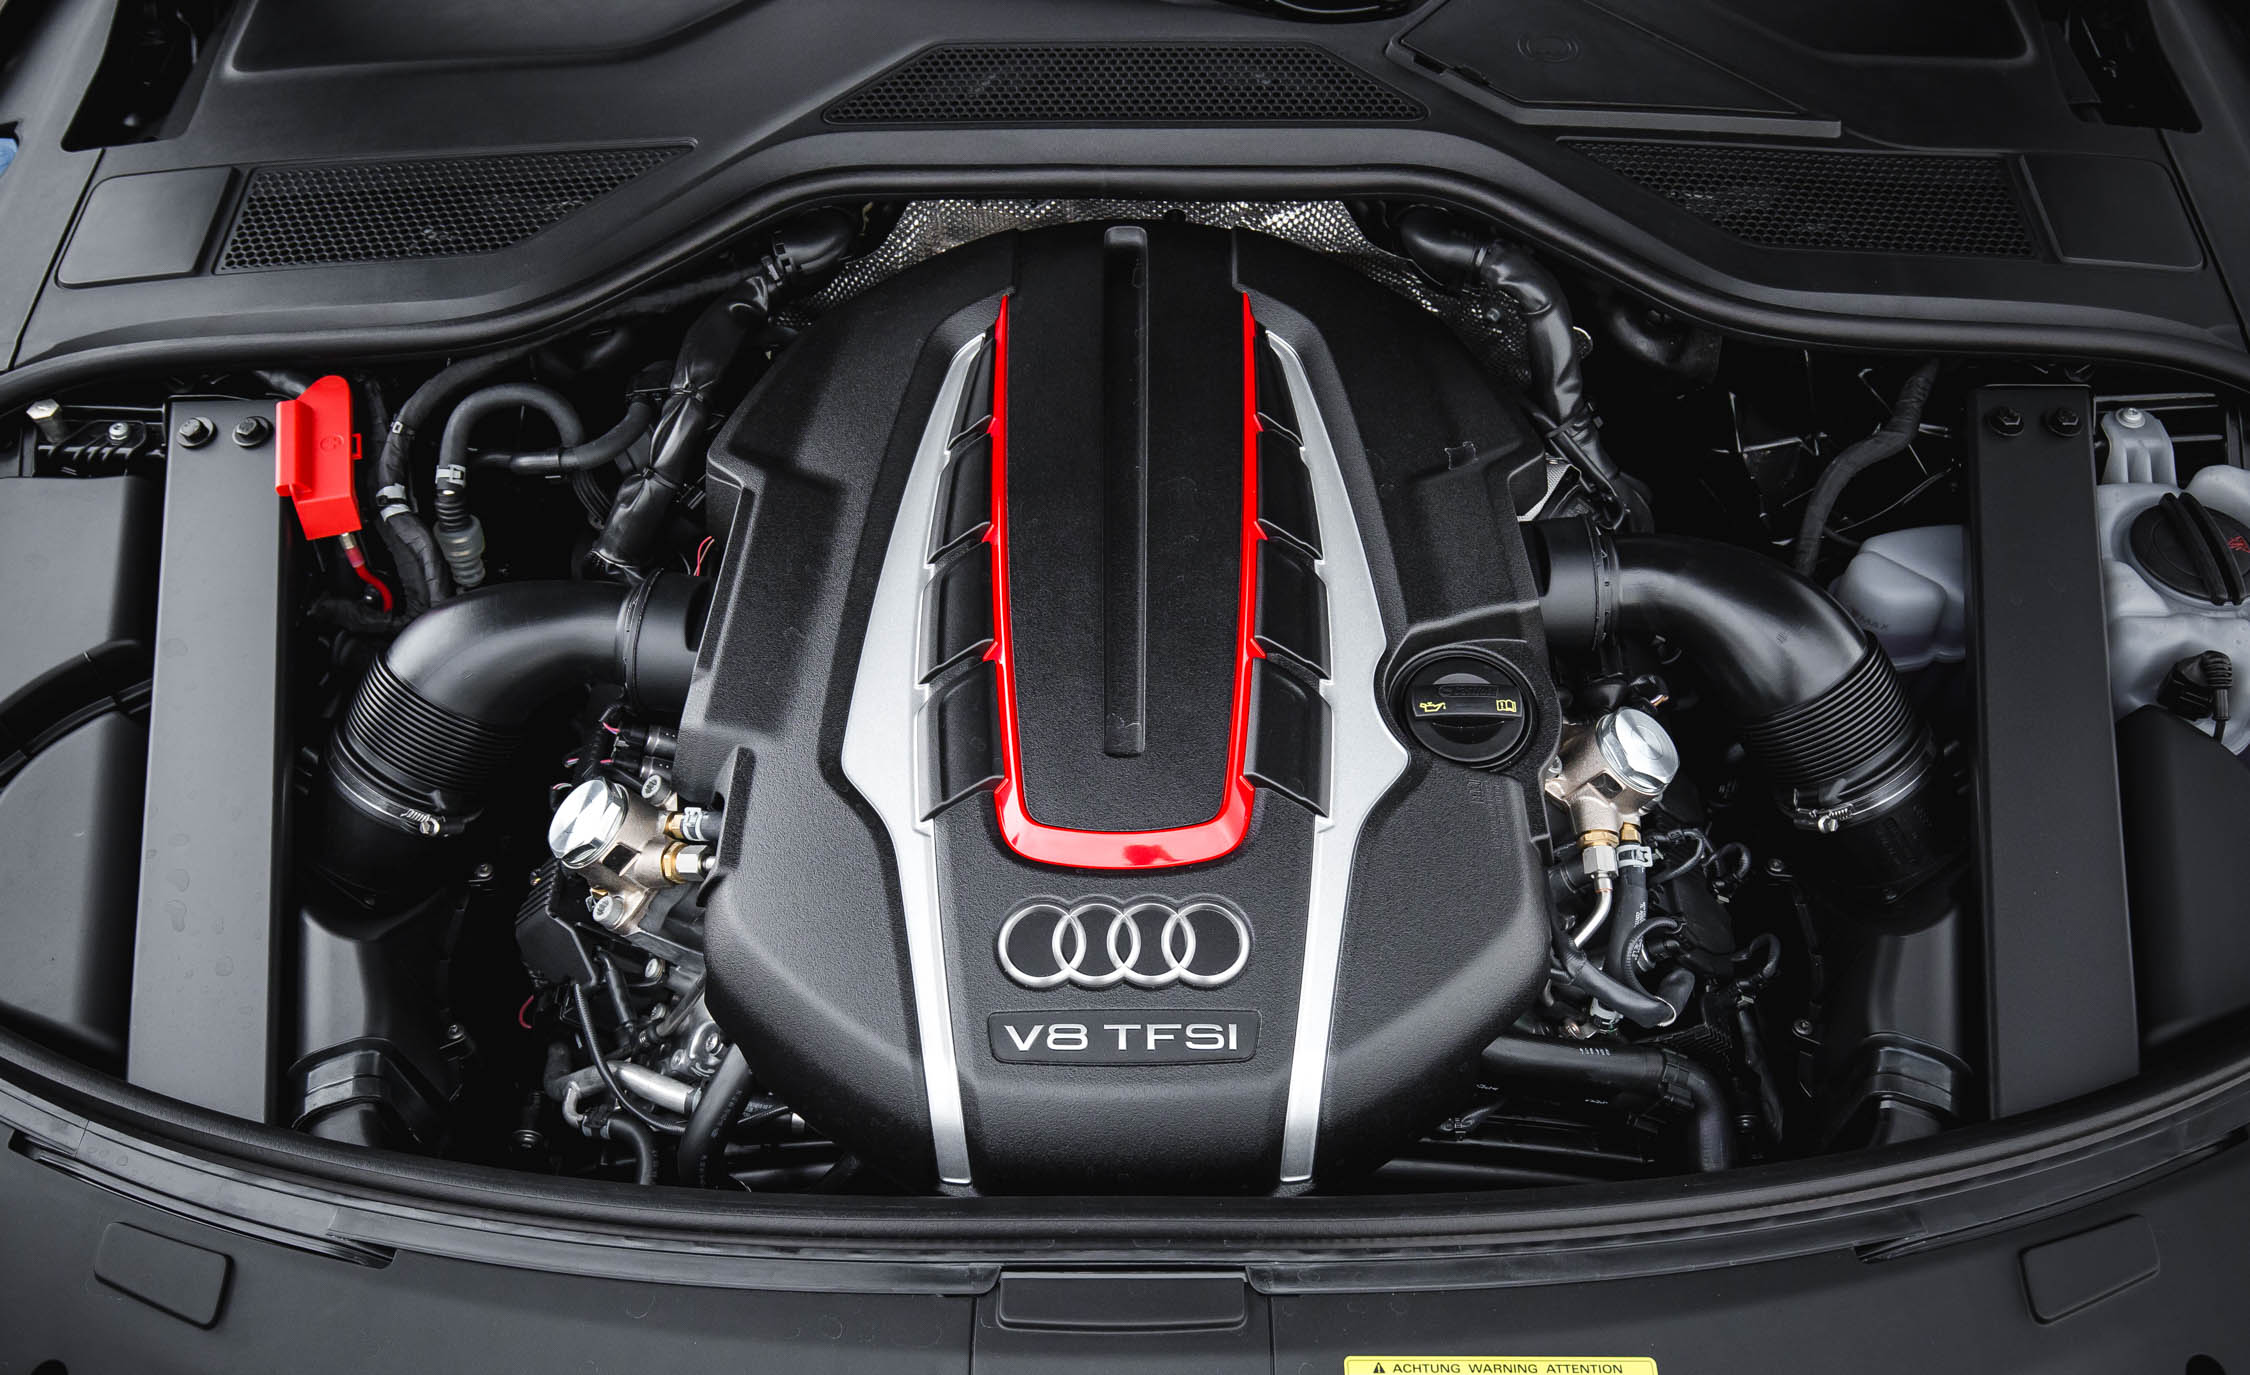 2017 Audi S8 Plus View Engine (Photo 36 of 36)